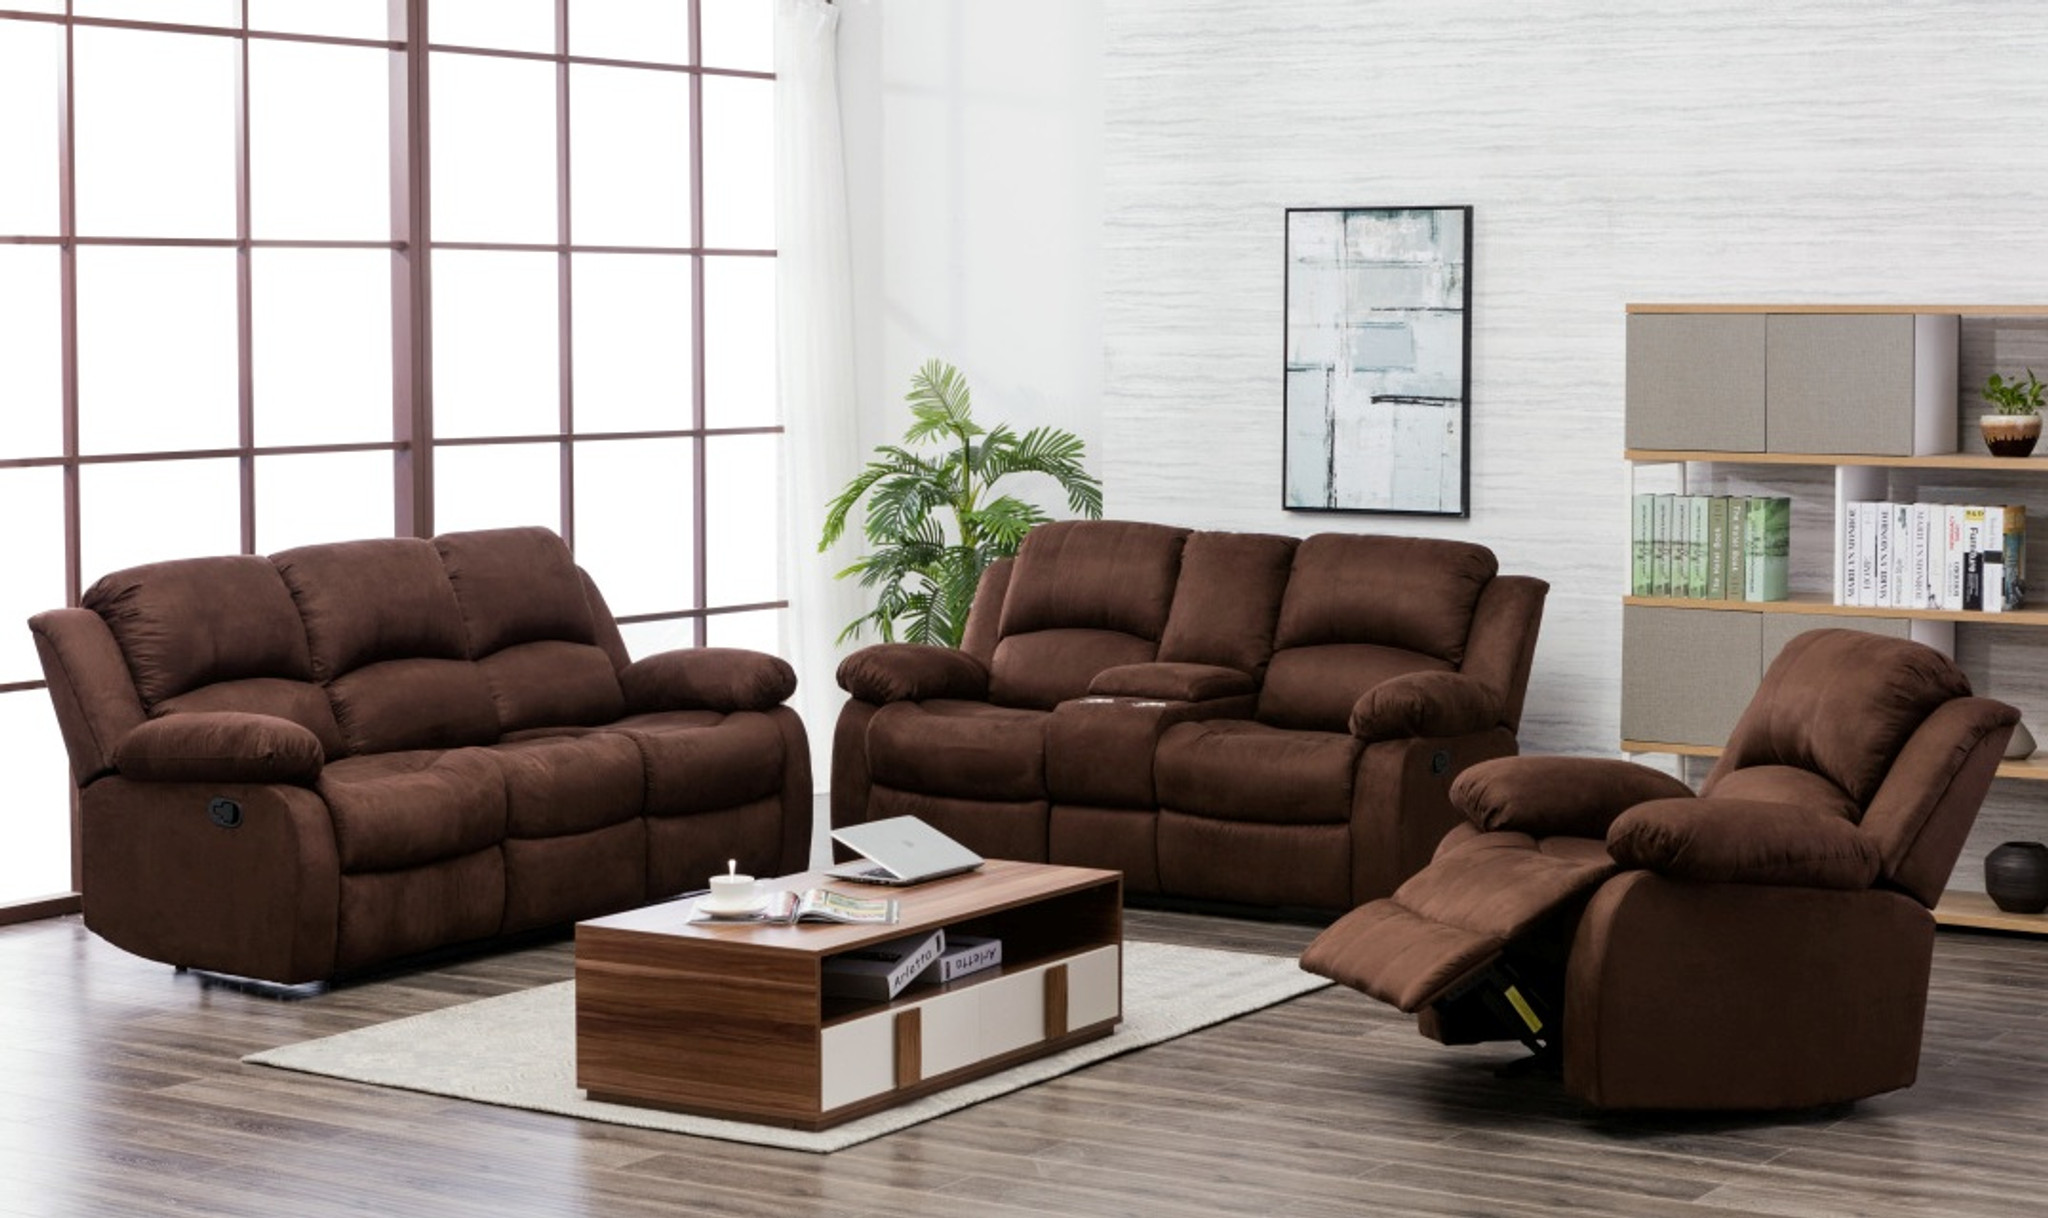 Brown Sofa And Loveseat Sets 2pcs Microfiber Brown Sofa And Loveseat Set